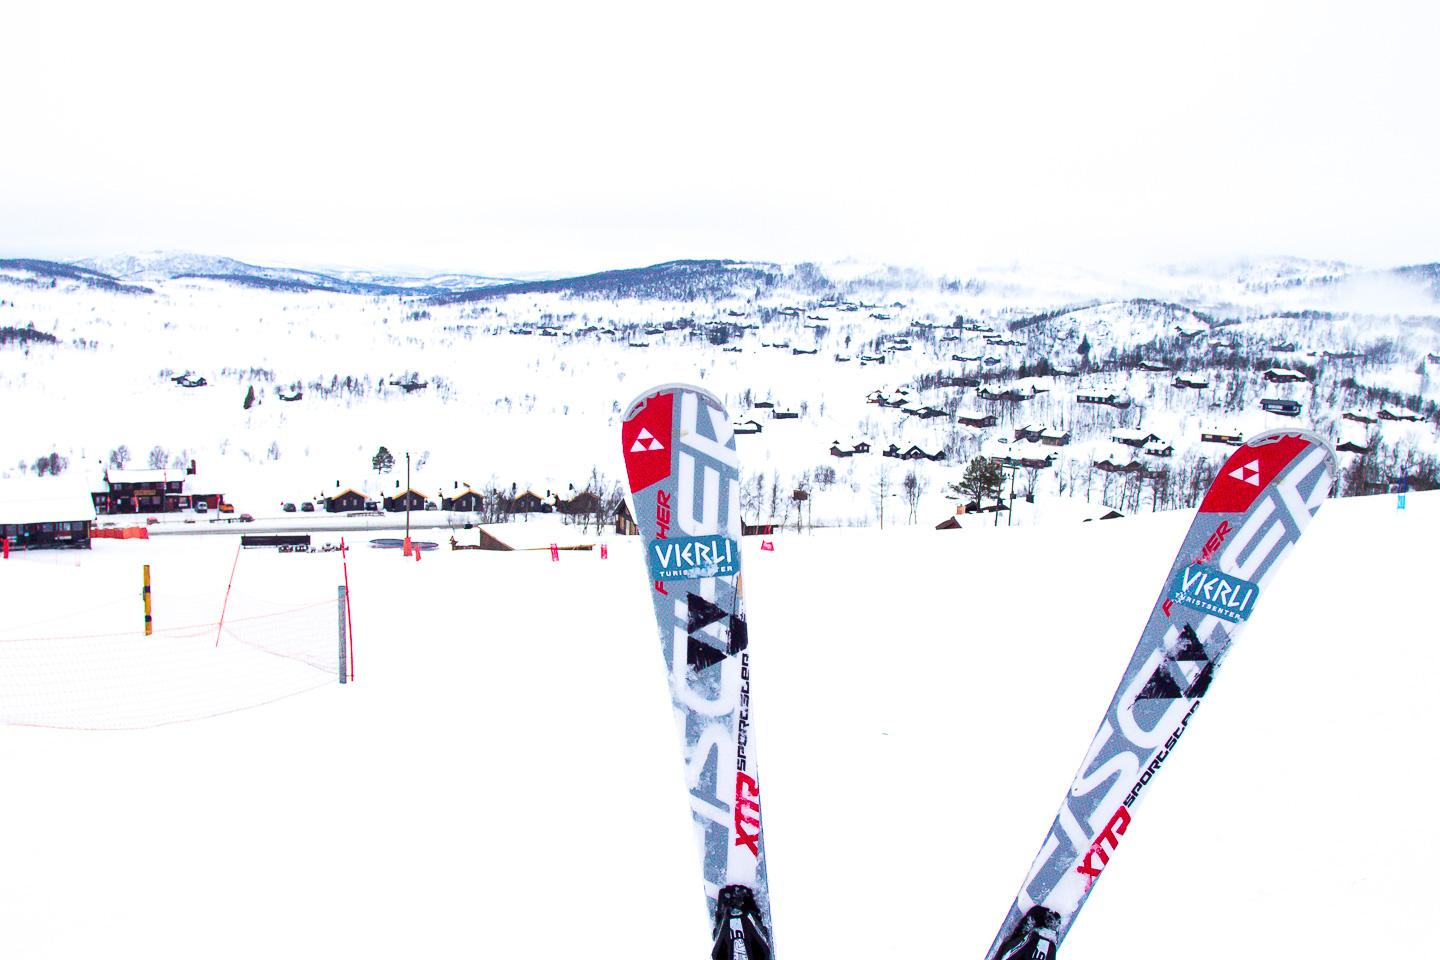 skiing Norway Telemark Vierli